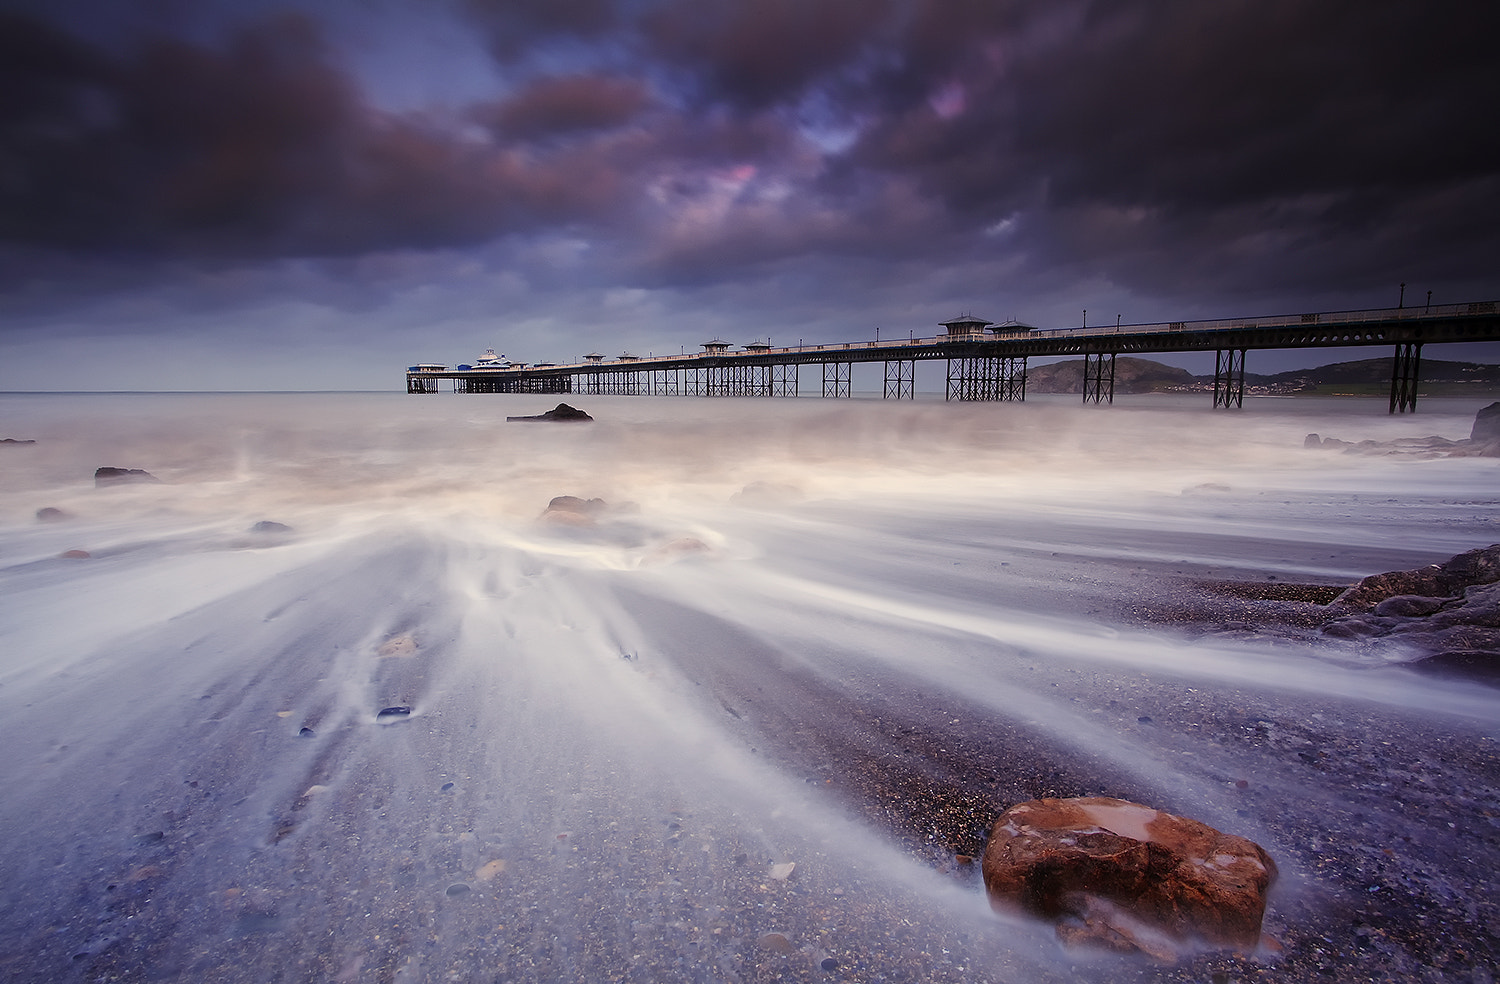 Photograph Llandudno Pier by Chris Styles on 500px